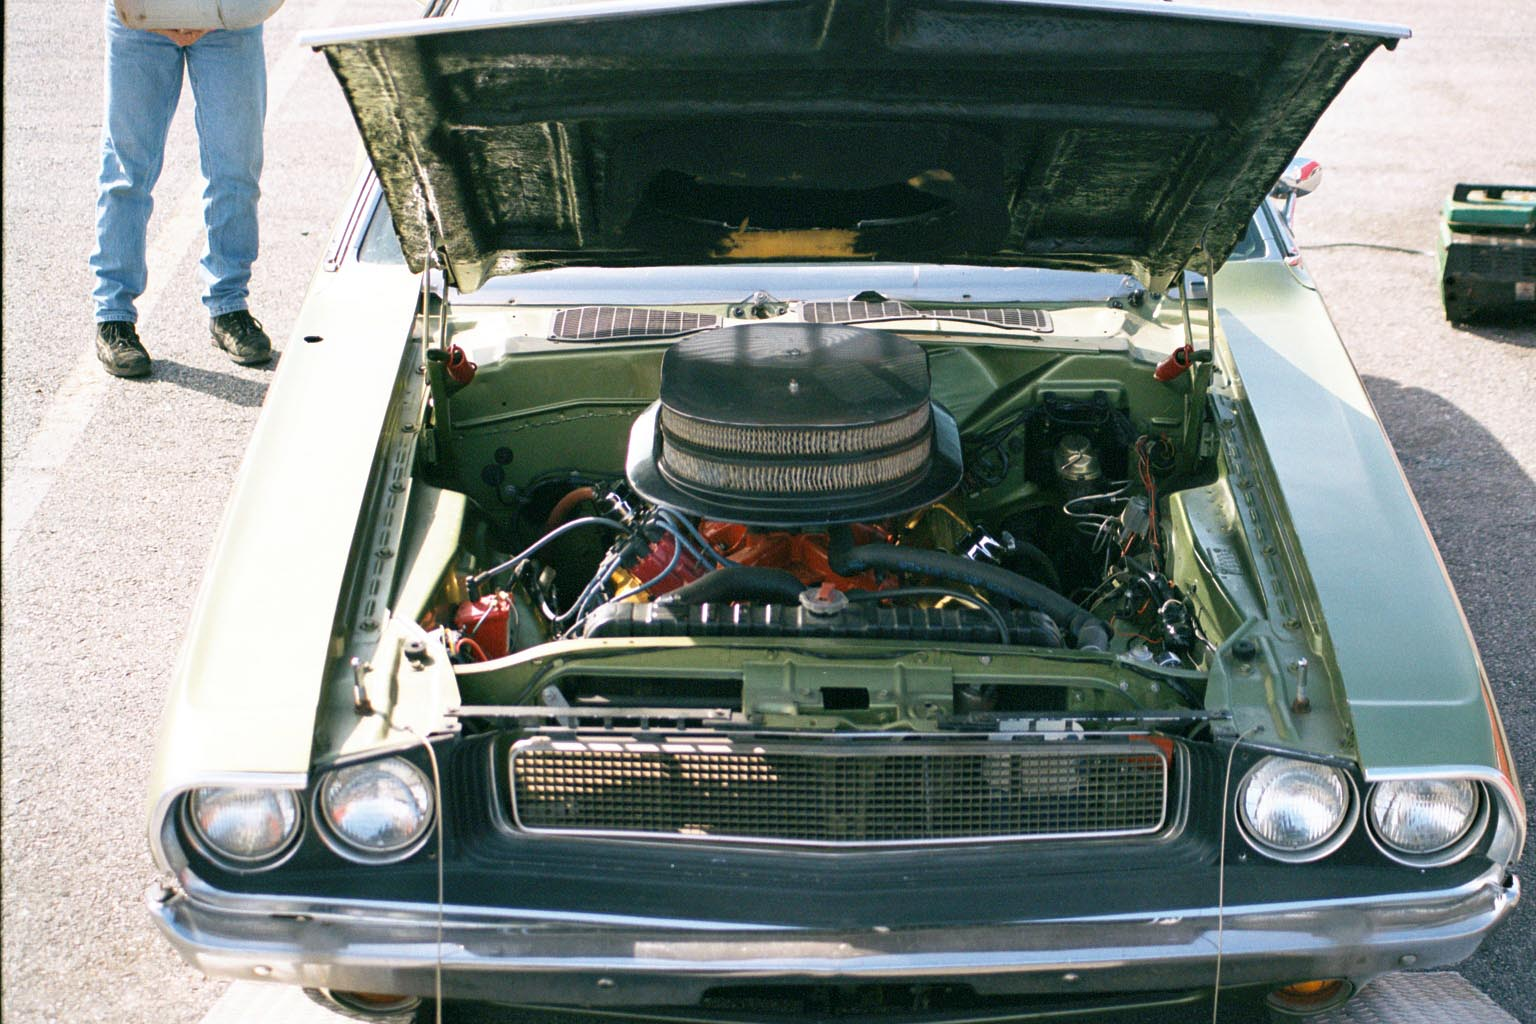 1970 Dodge Challenger Engine Compartment Picture